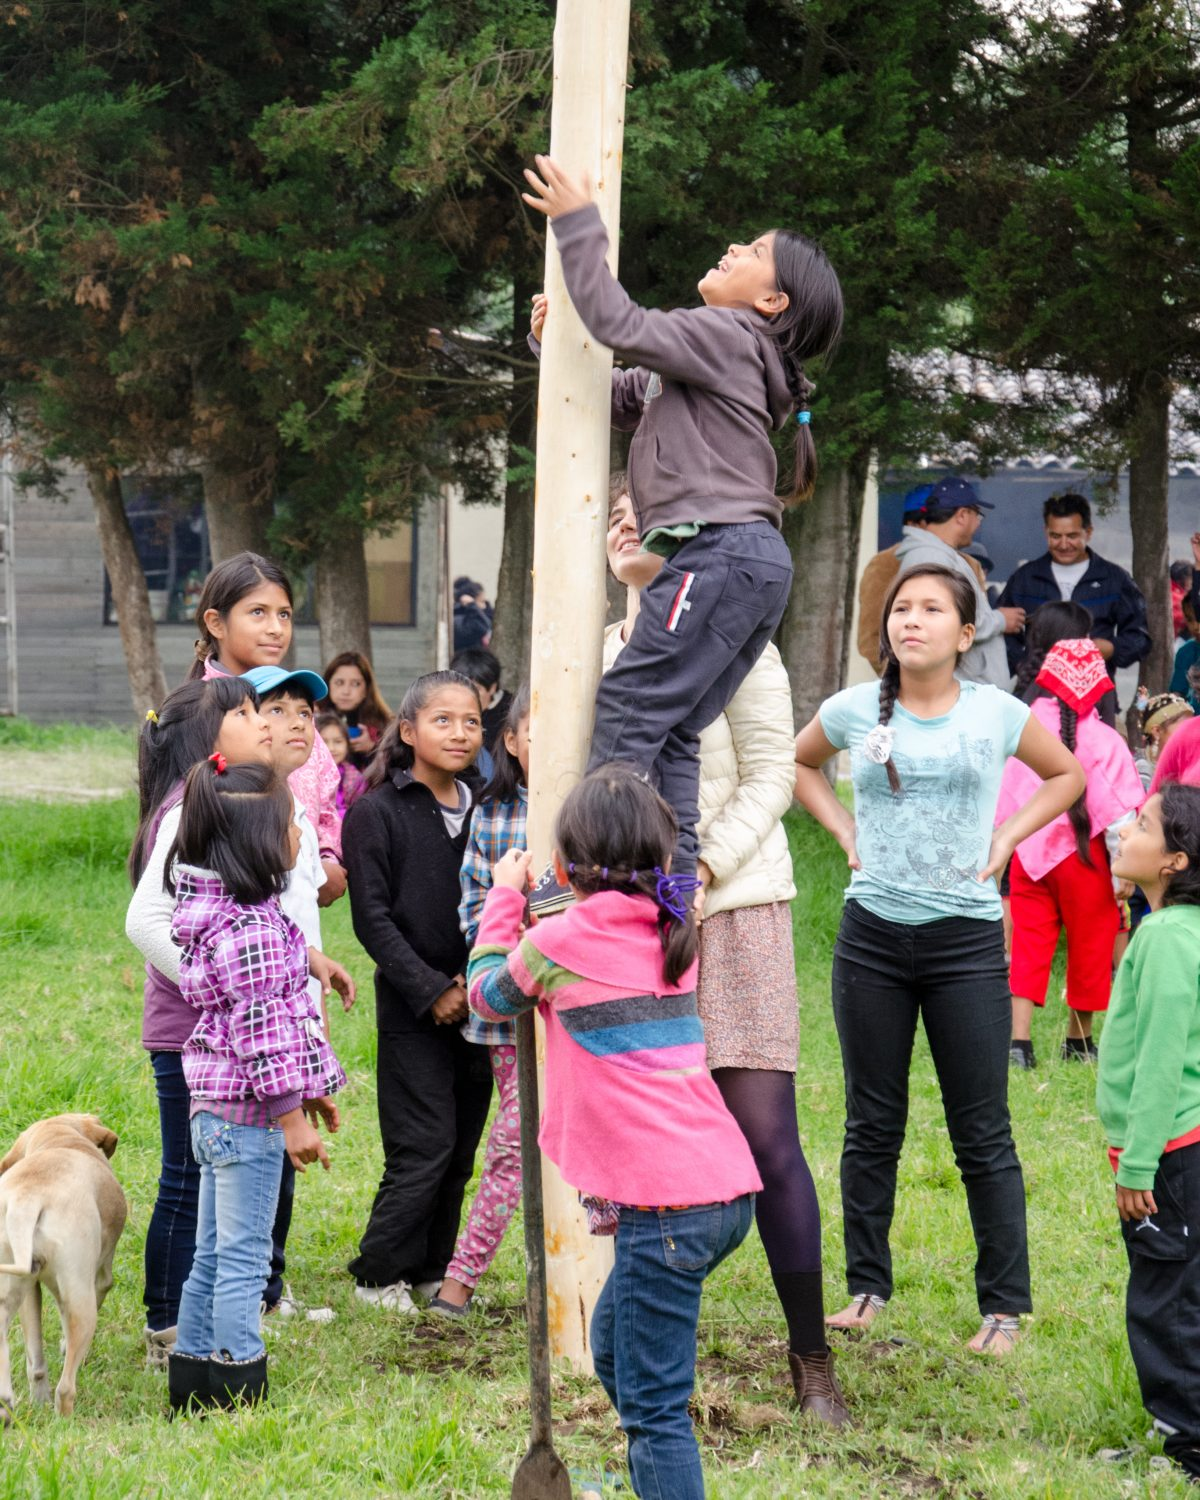 Climbing the Food Tree, Kapak Raymi, Quito, Ecuador | ©Angela Drake / Not Your Average American